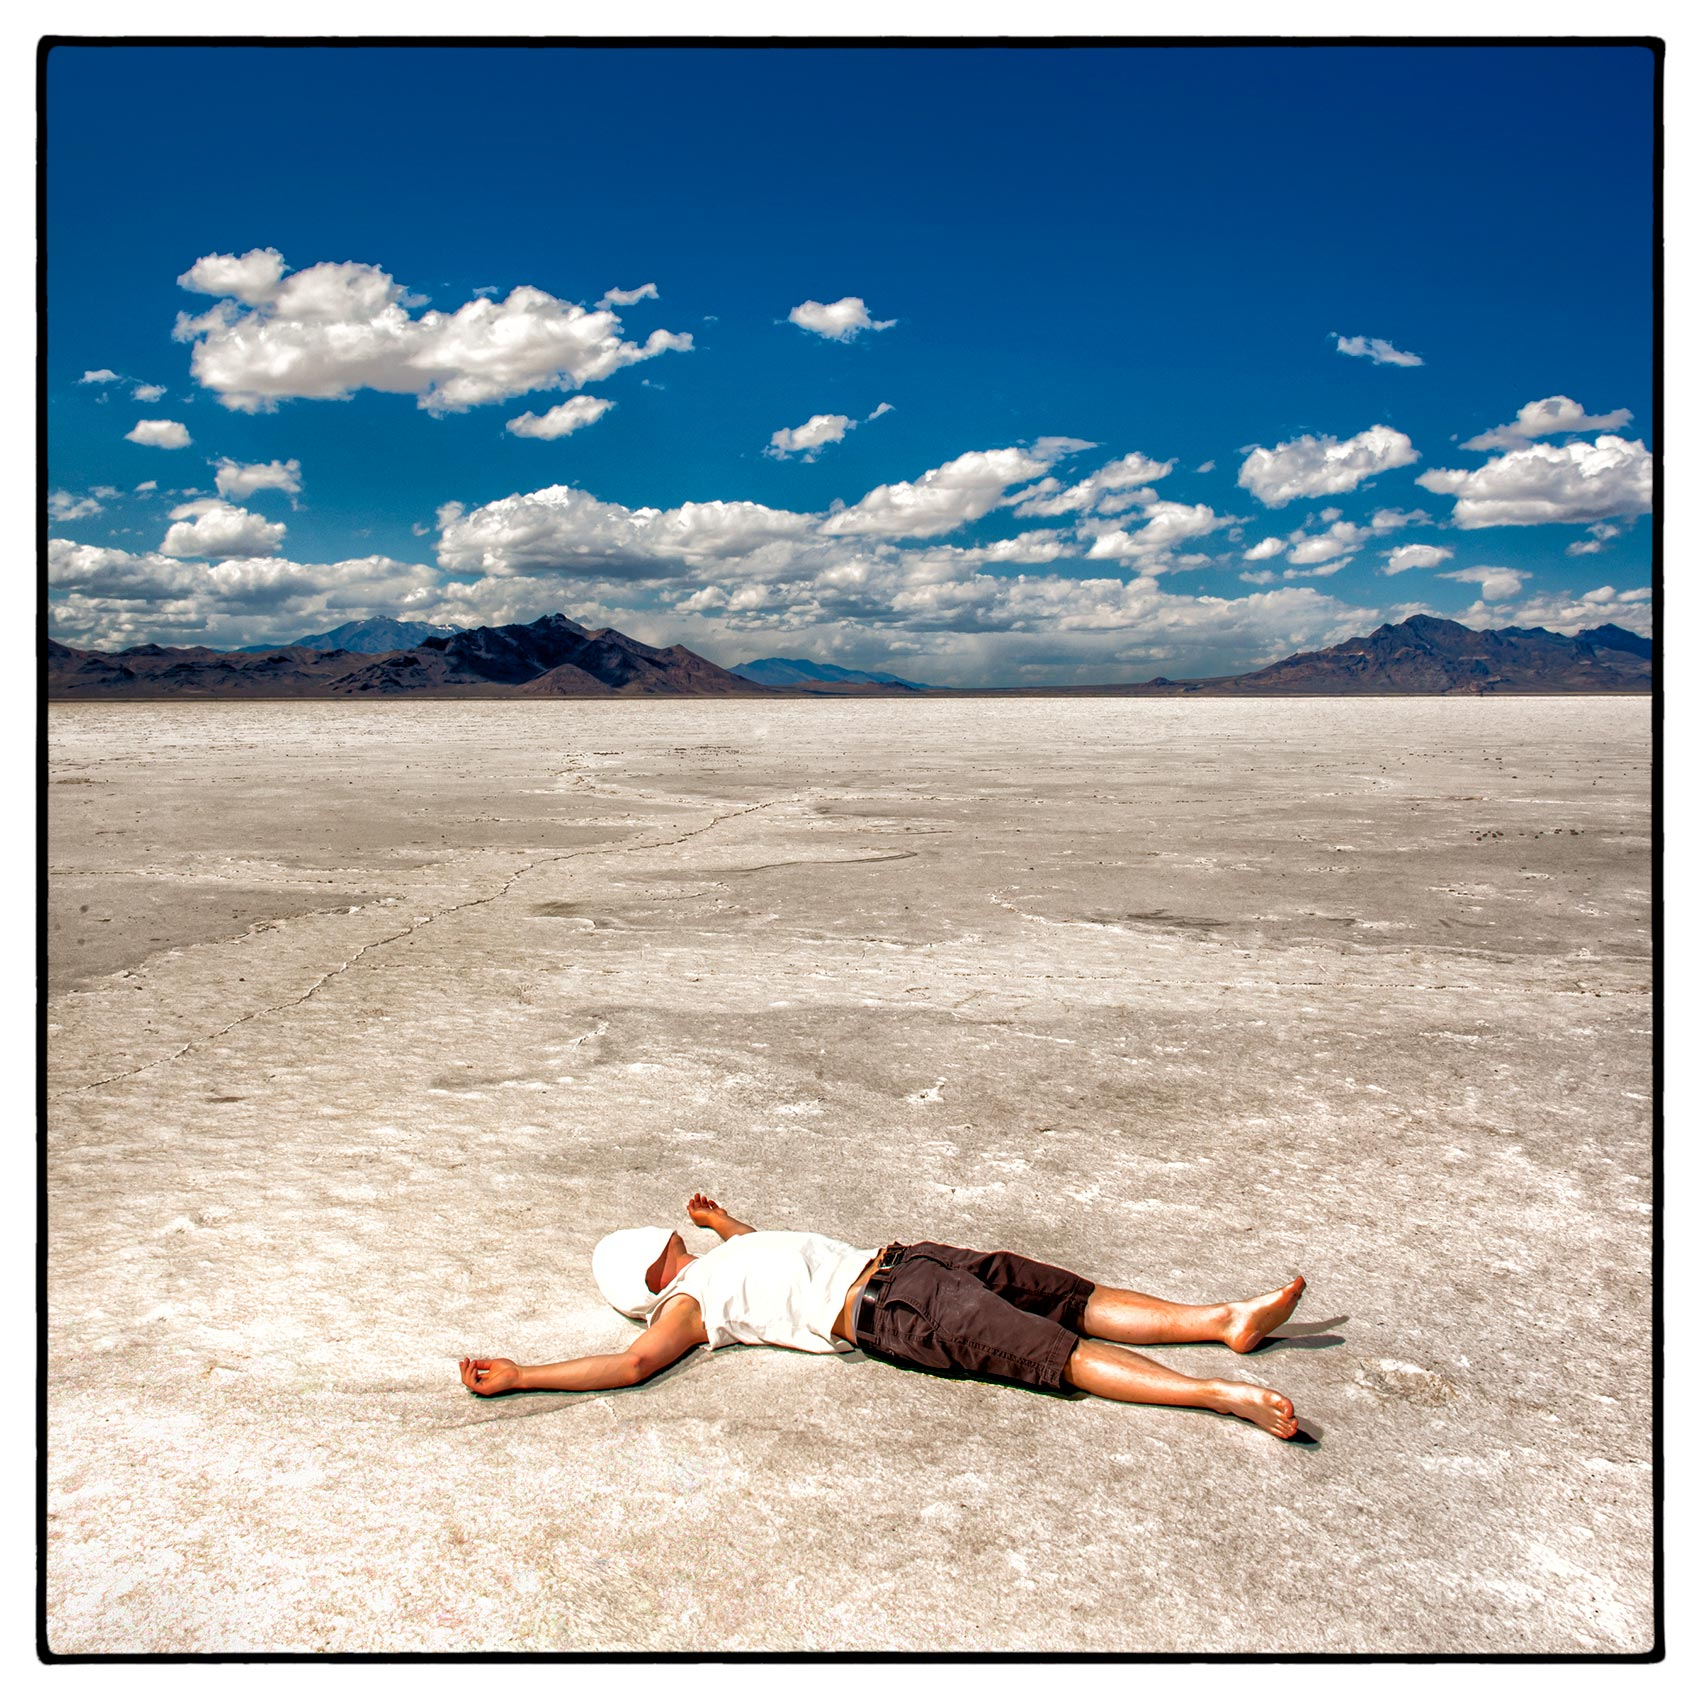 a-man-lays-on-the-bed-of-the-bonneville-salt-flats-outside-of-salt-lake-city-utah